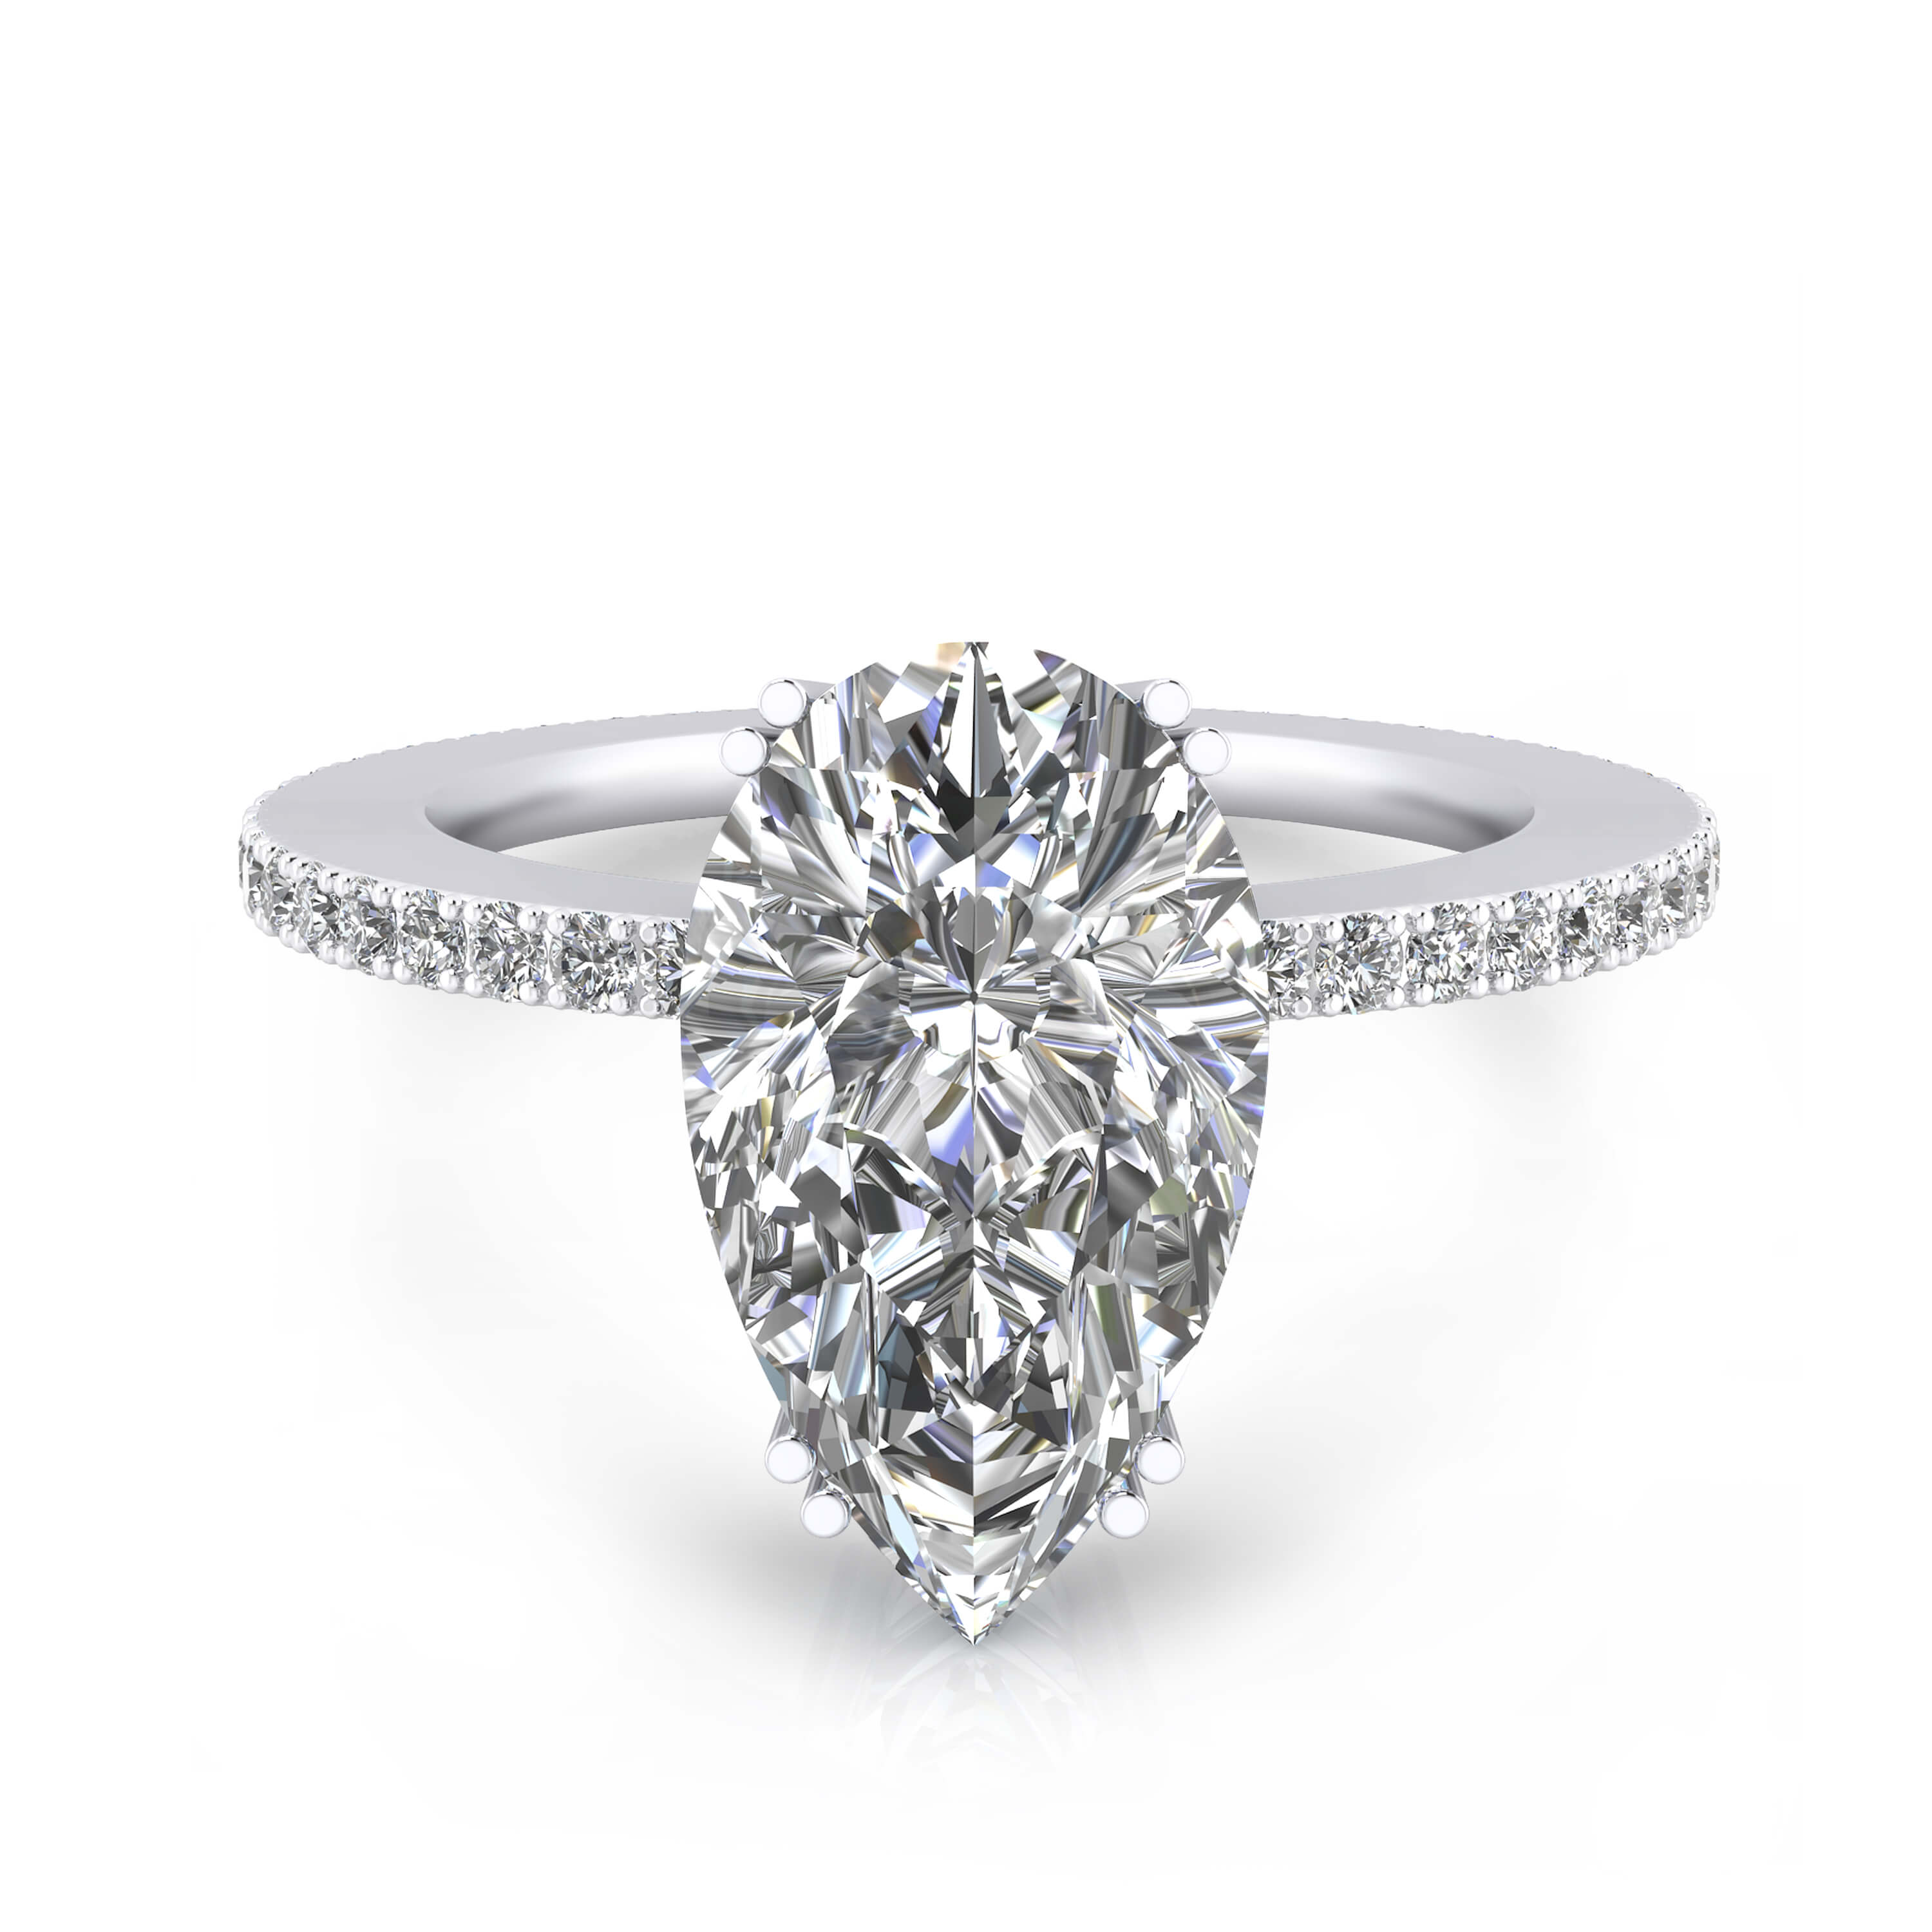 White gold engagement rings with 40 diamonds and a pear cut shape diamond